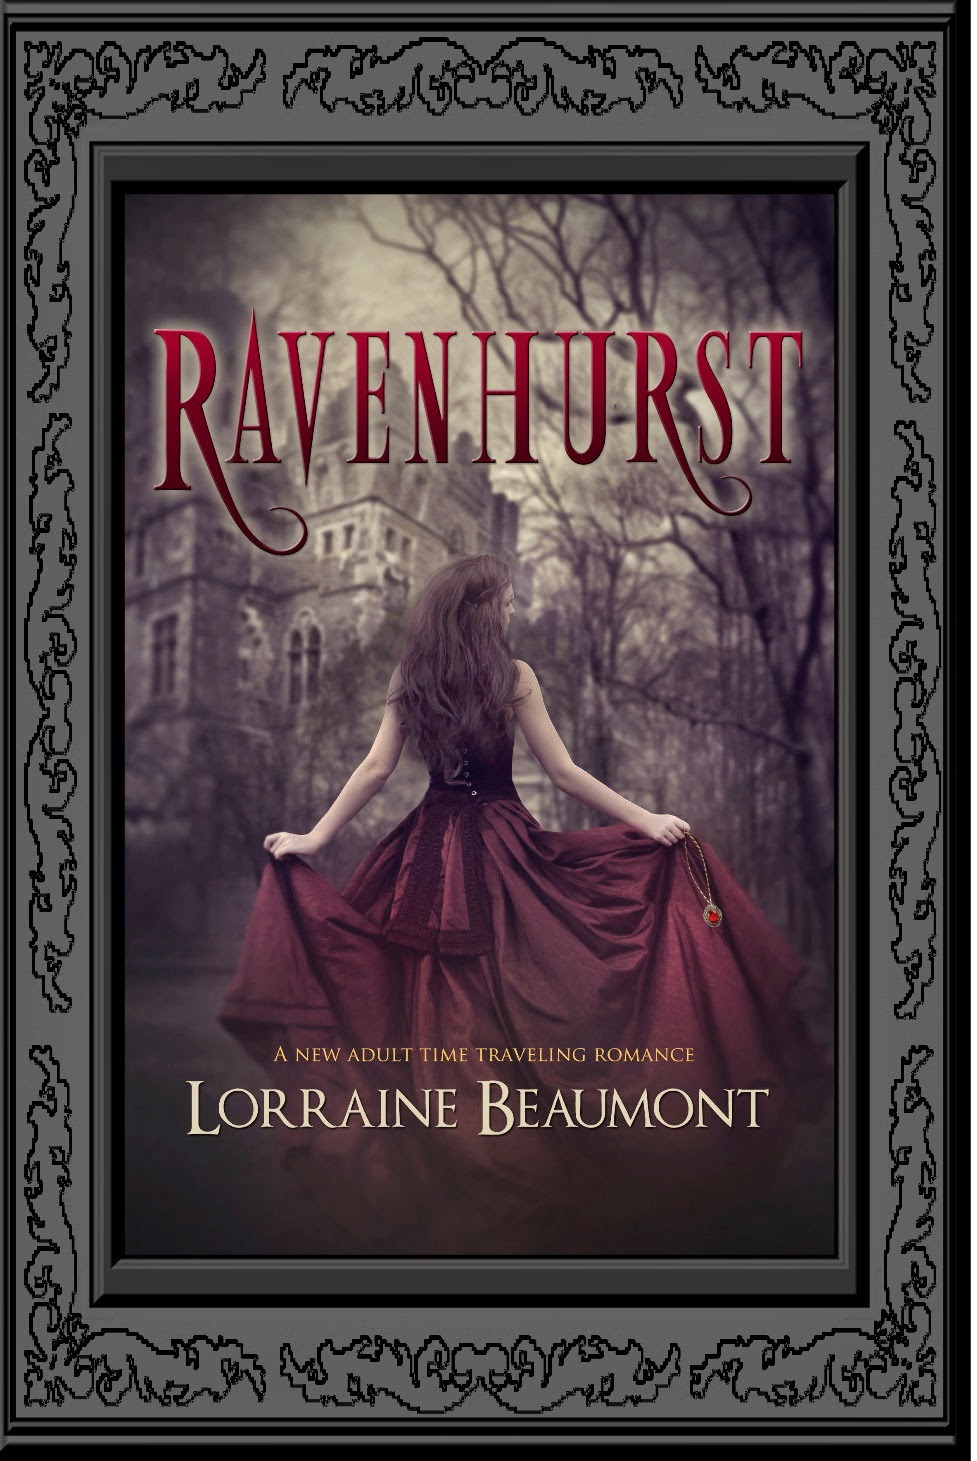 http://theravenhurstseries.blogspot.com/